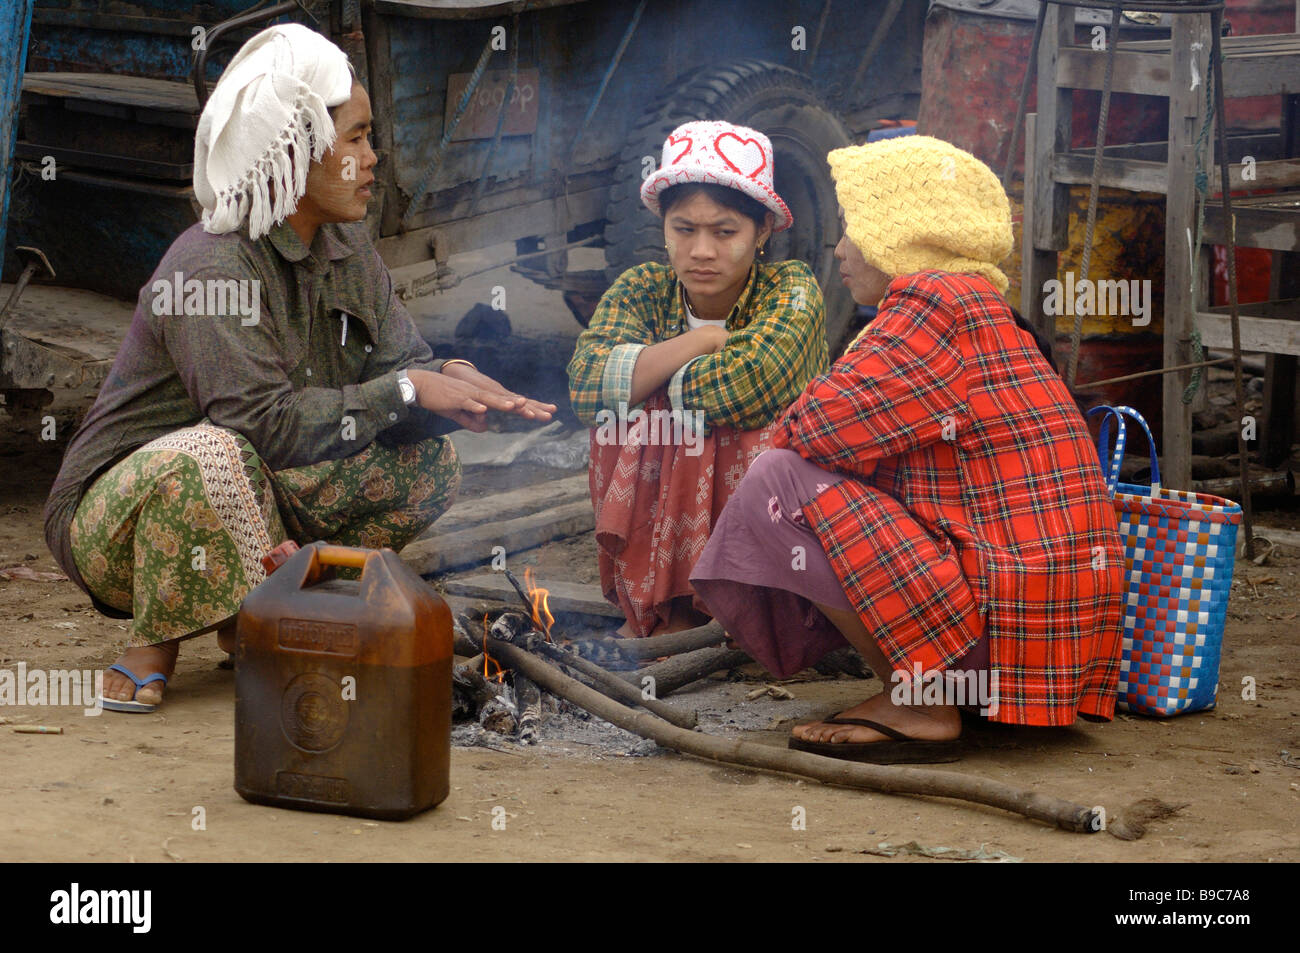 Burmese day labourer sitting on small fire at the ferry station of Mandalay Myanmar - Stock Image